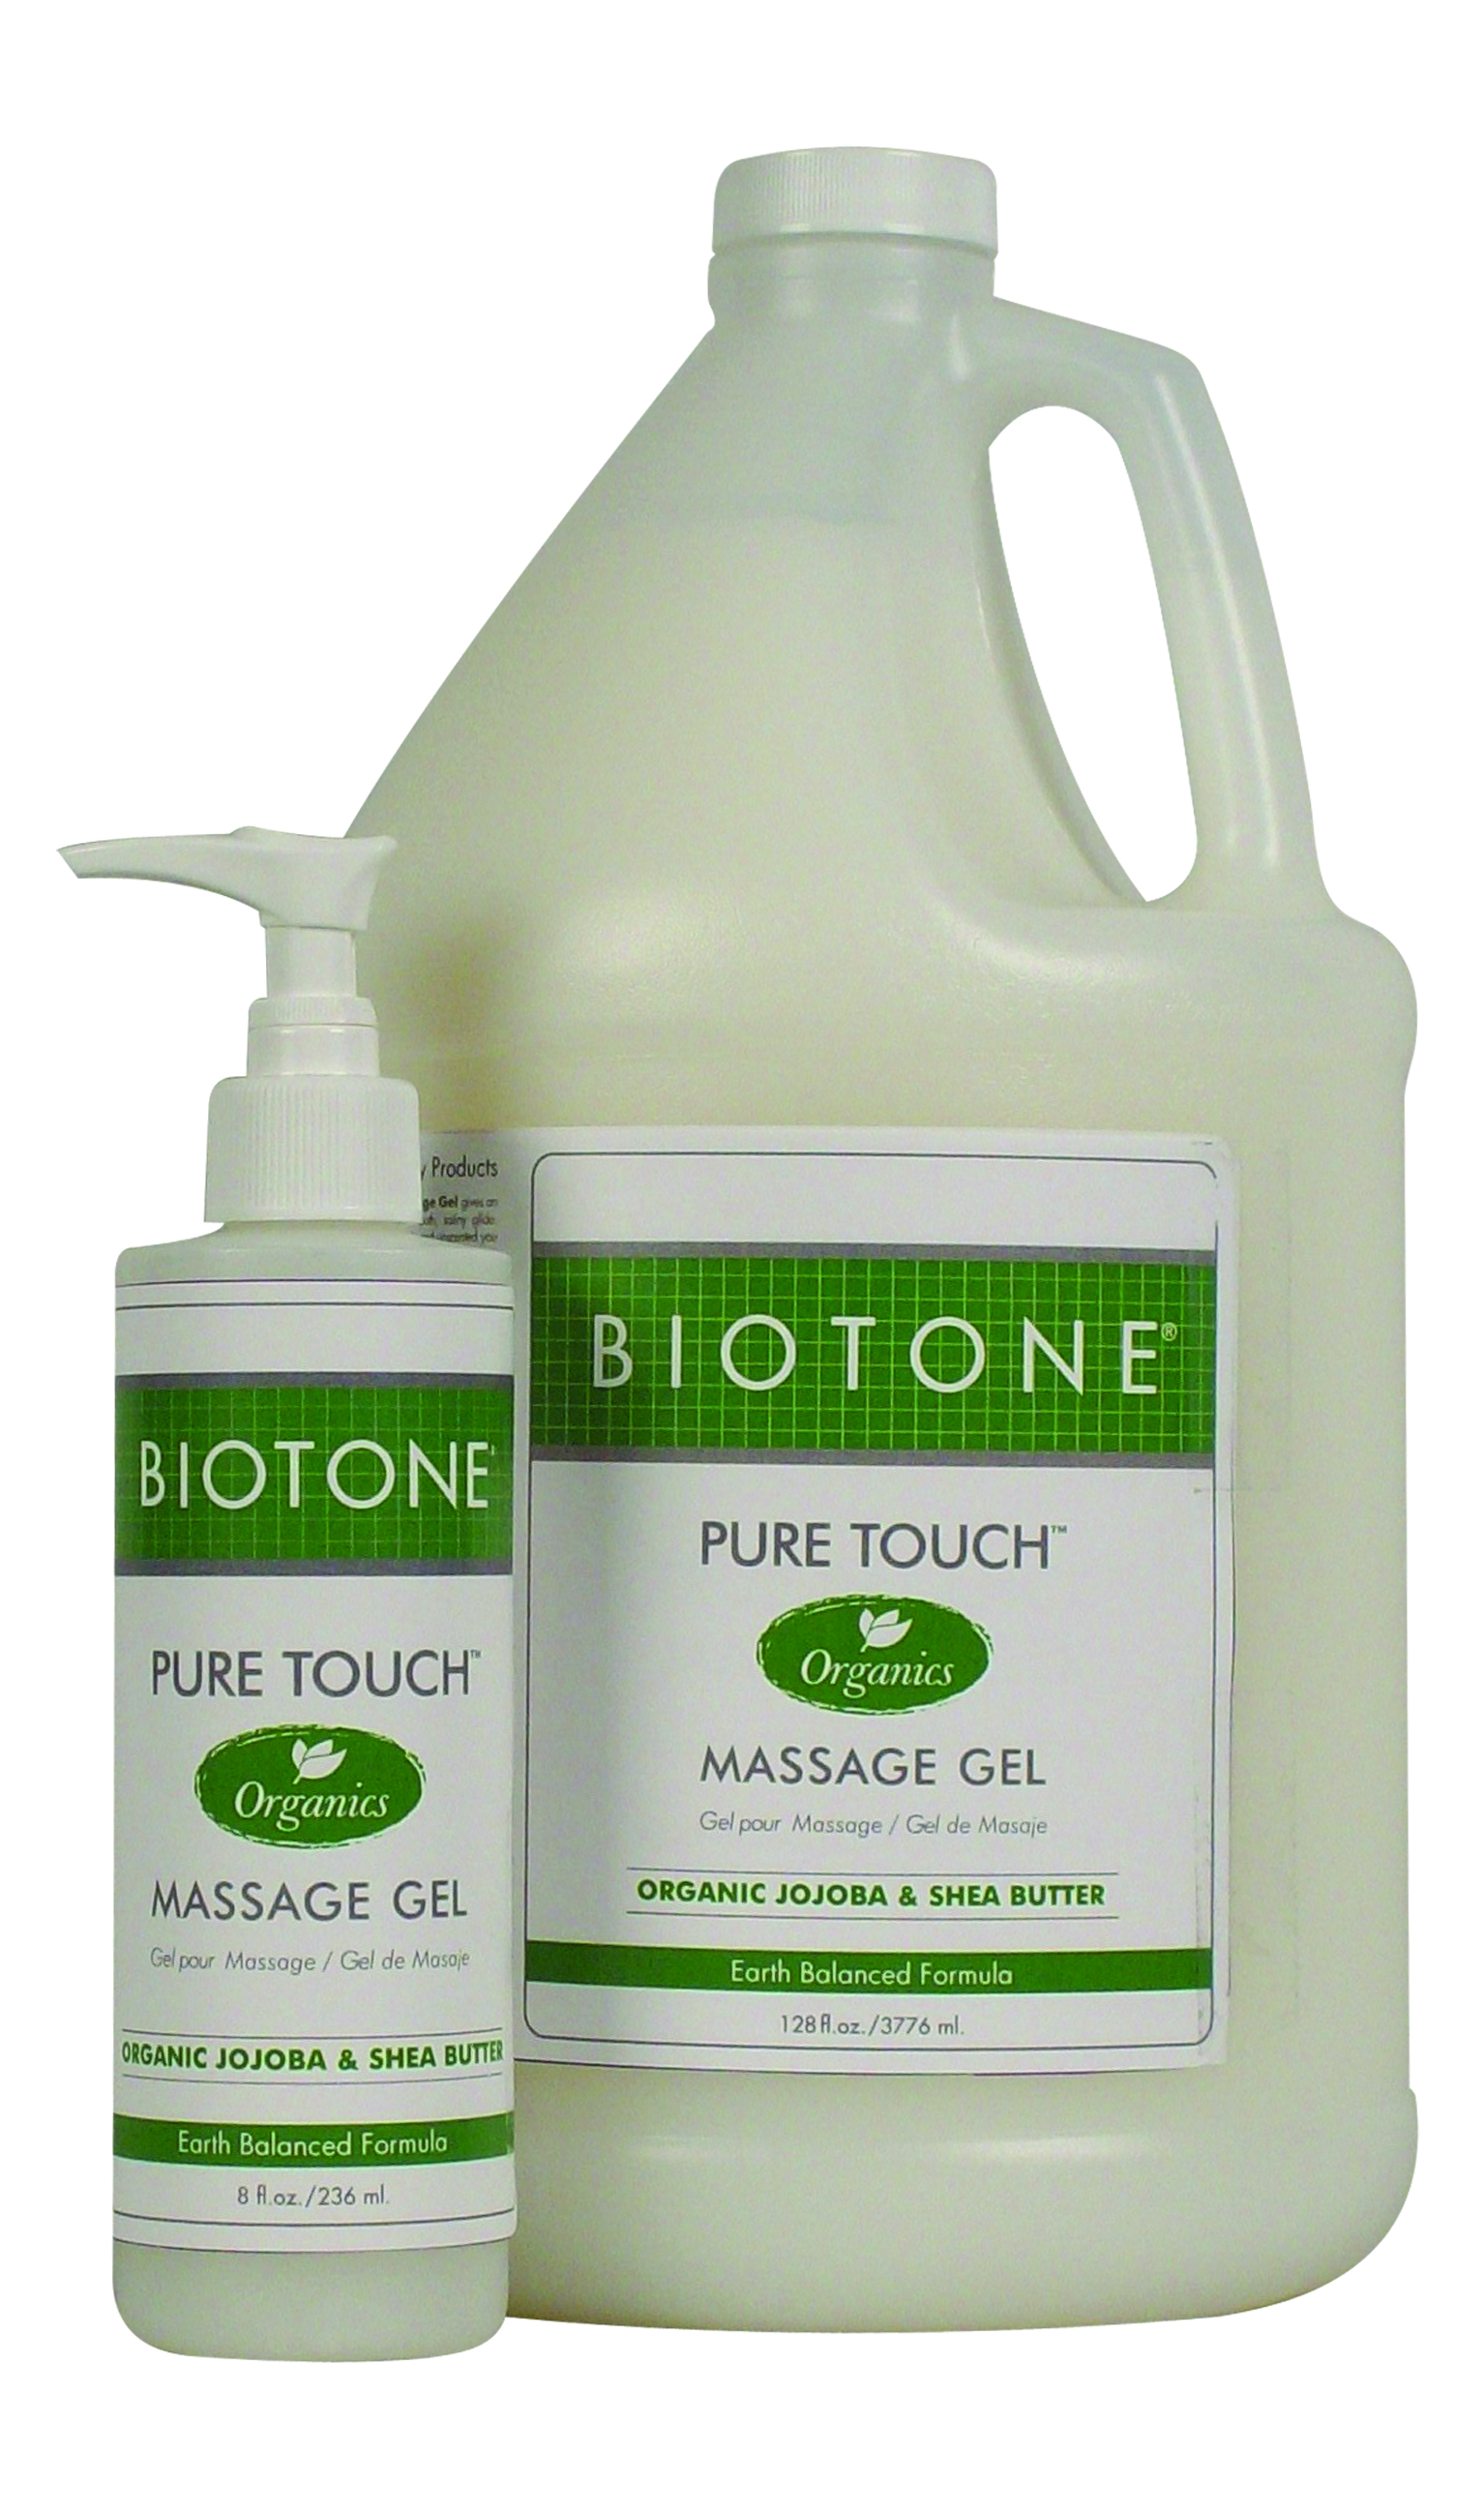 BIOTONE Introduces New Pure Touch Organics Massage Gel, MASSAGE Magazine